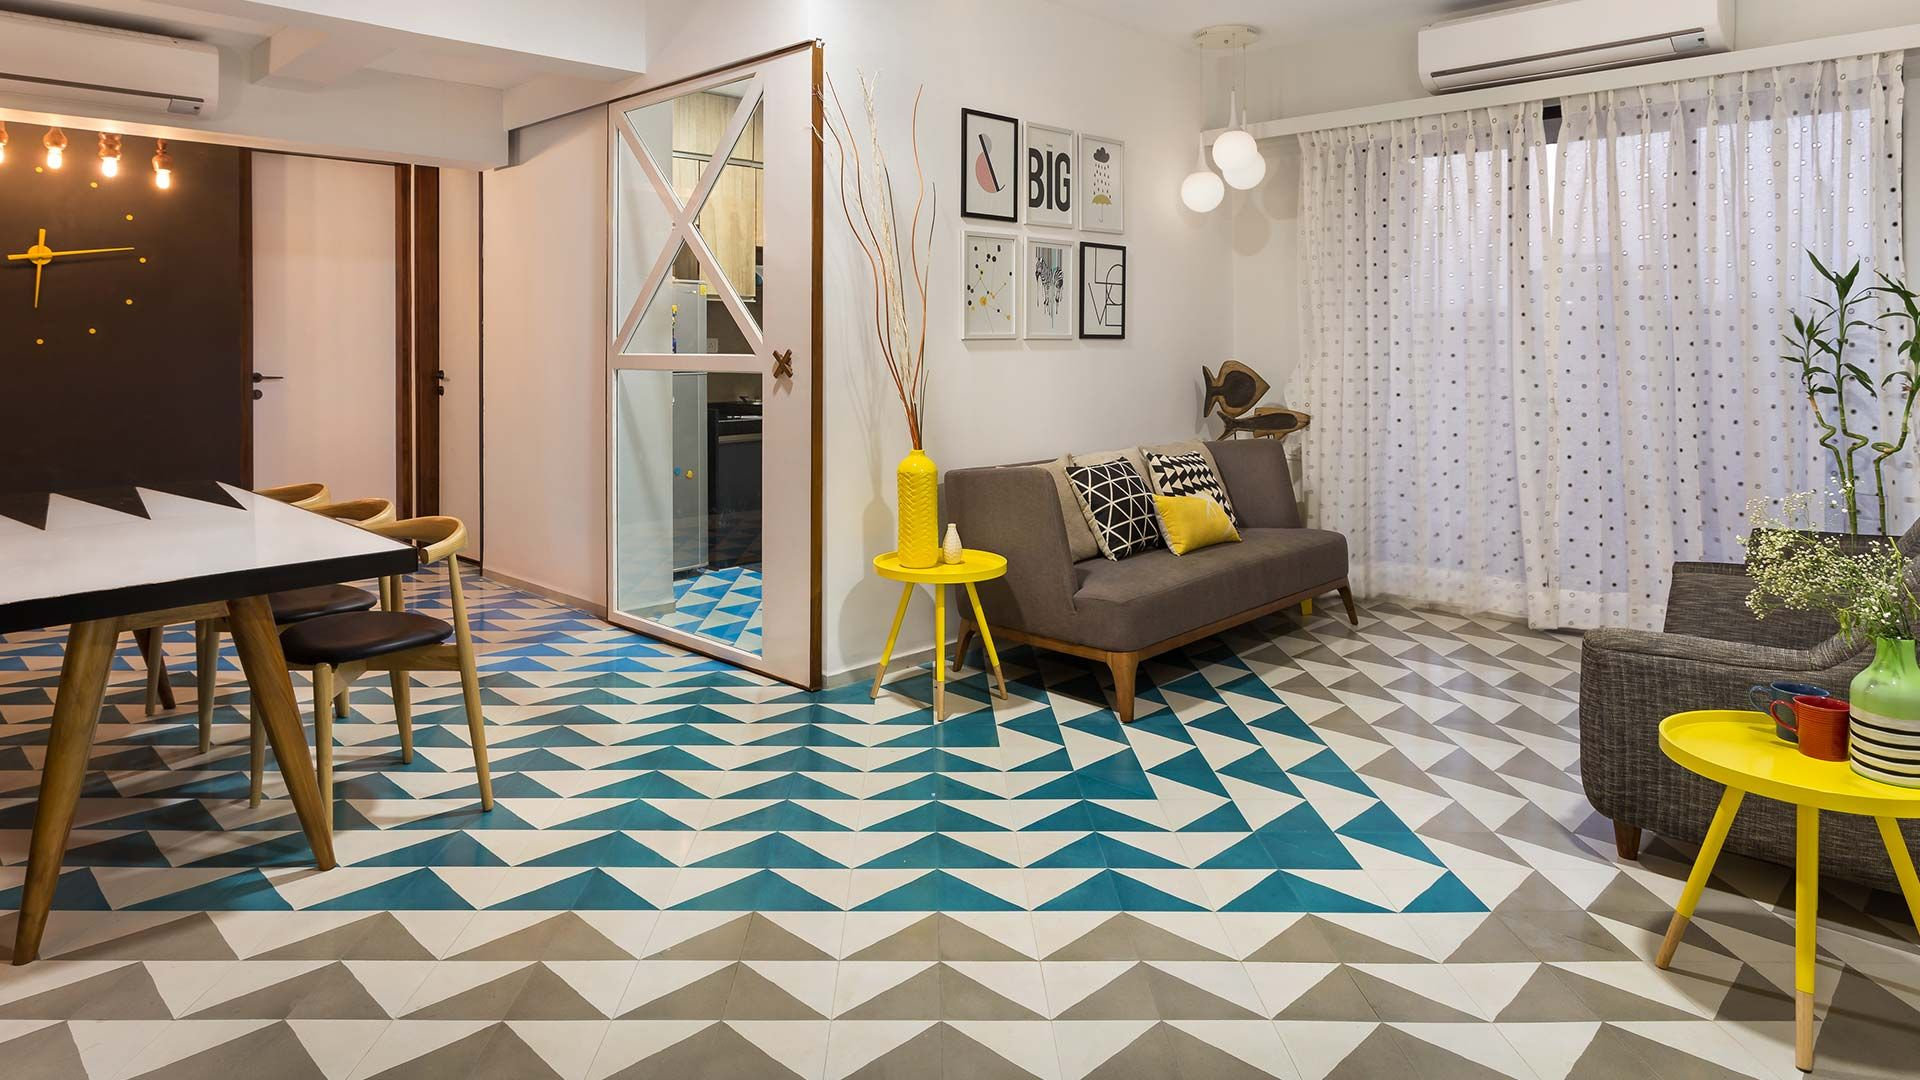 Bharat Floorings tiles, Le Mill pattern in Blue Lagoon and